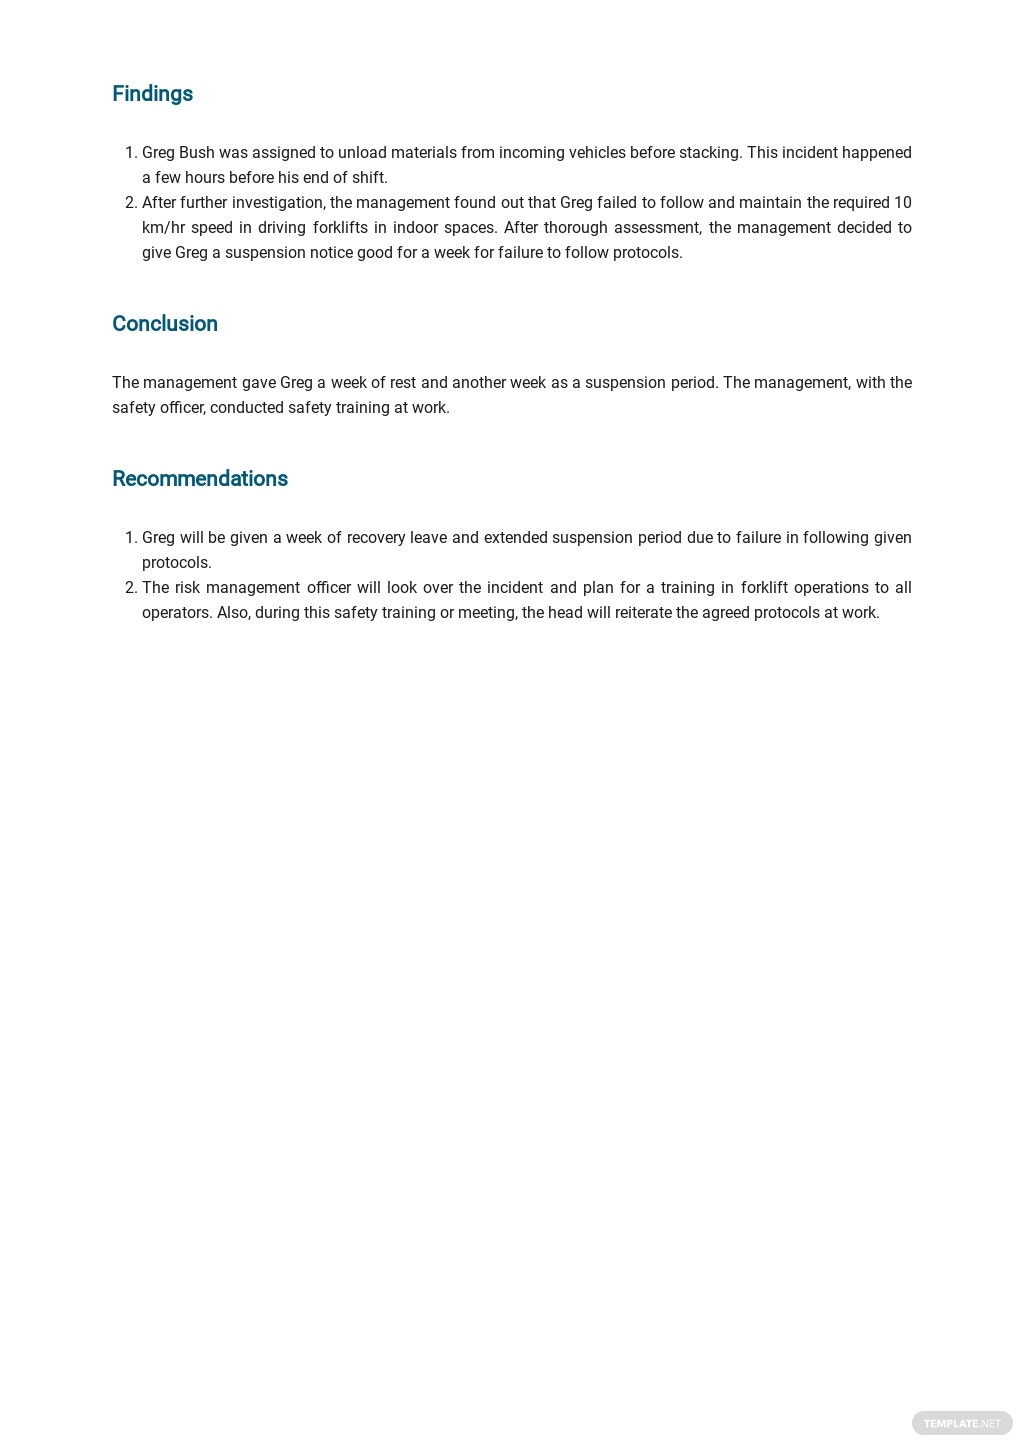 Free Incident Report Template 2.jpe